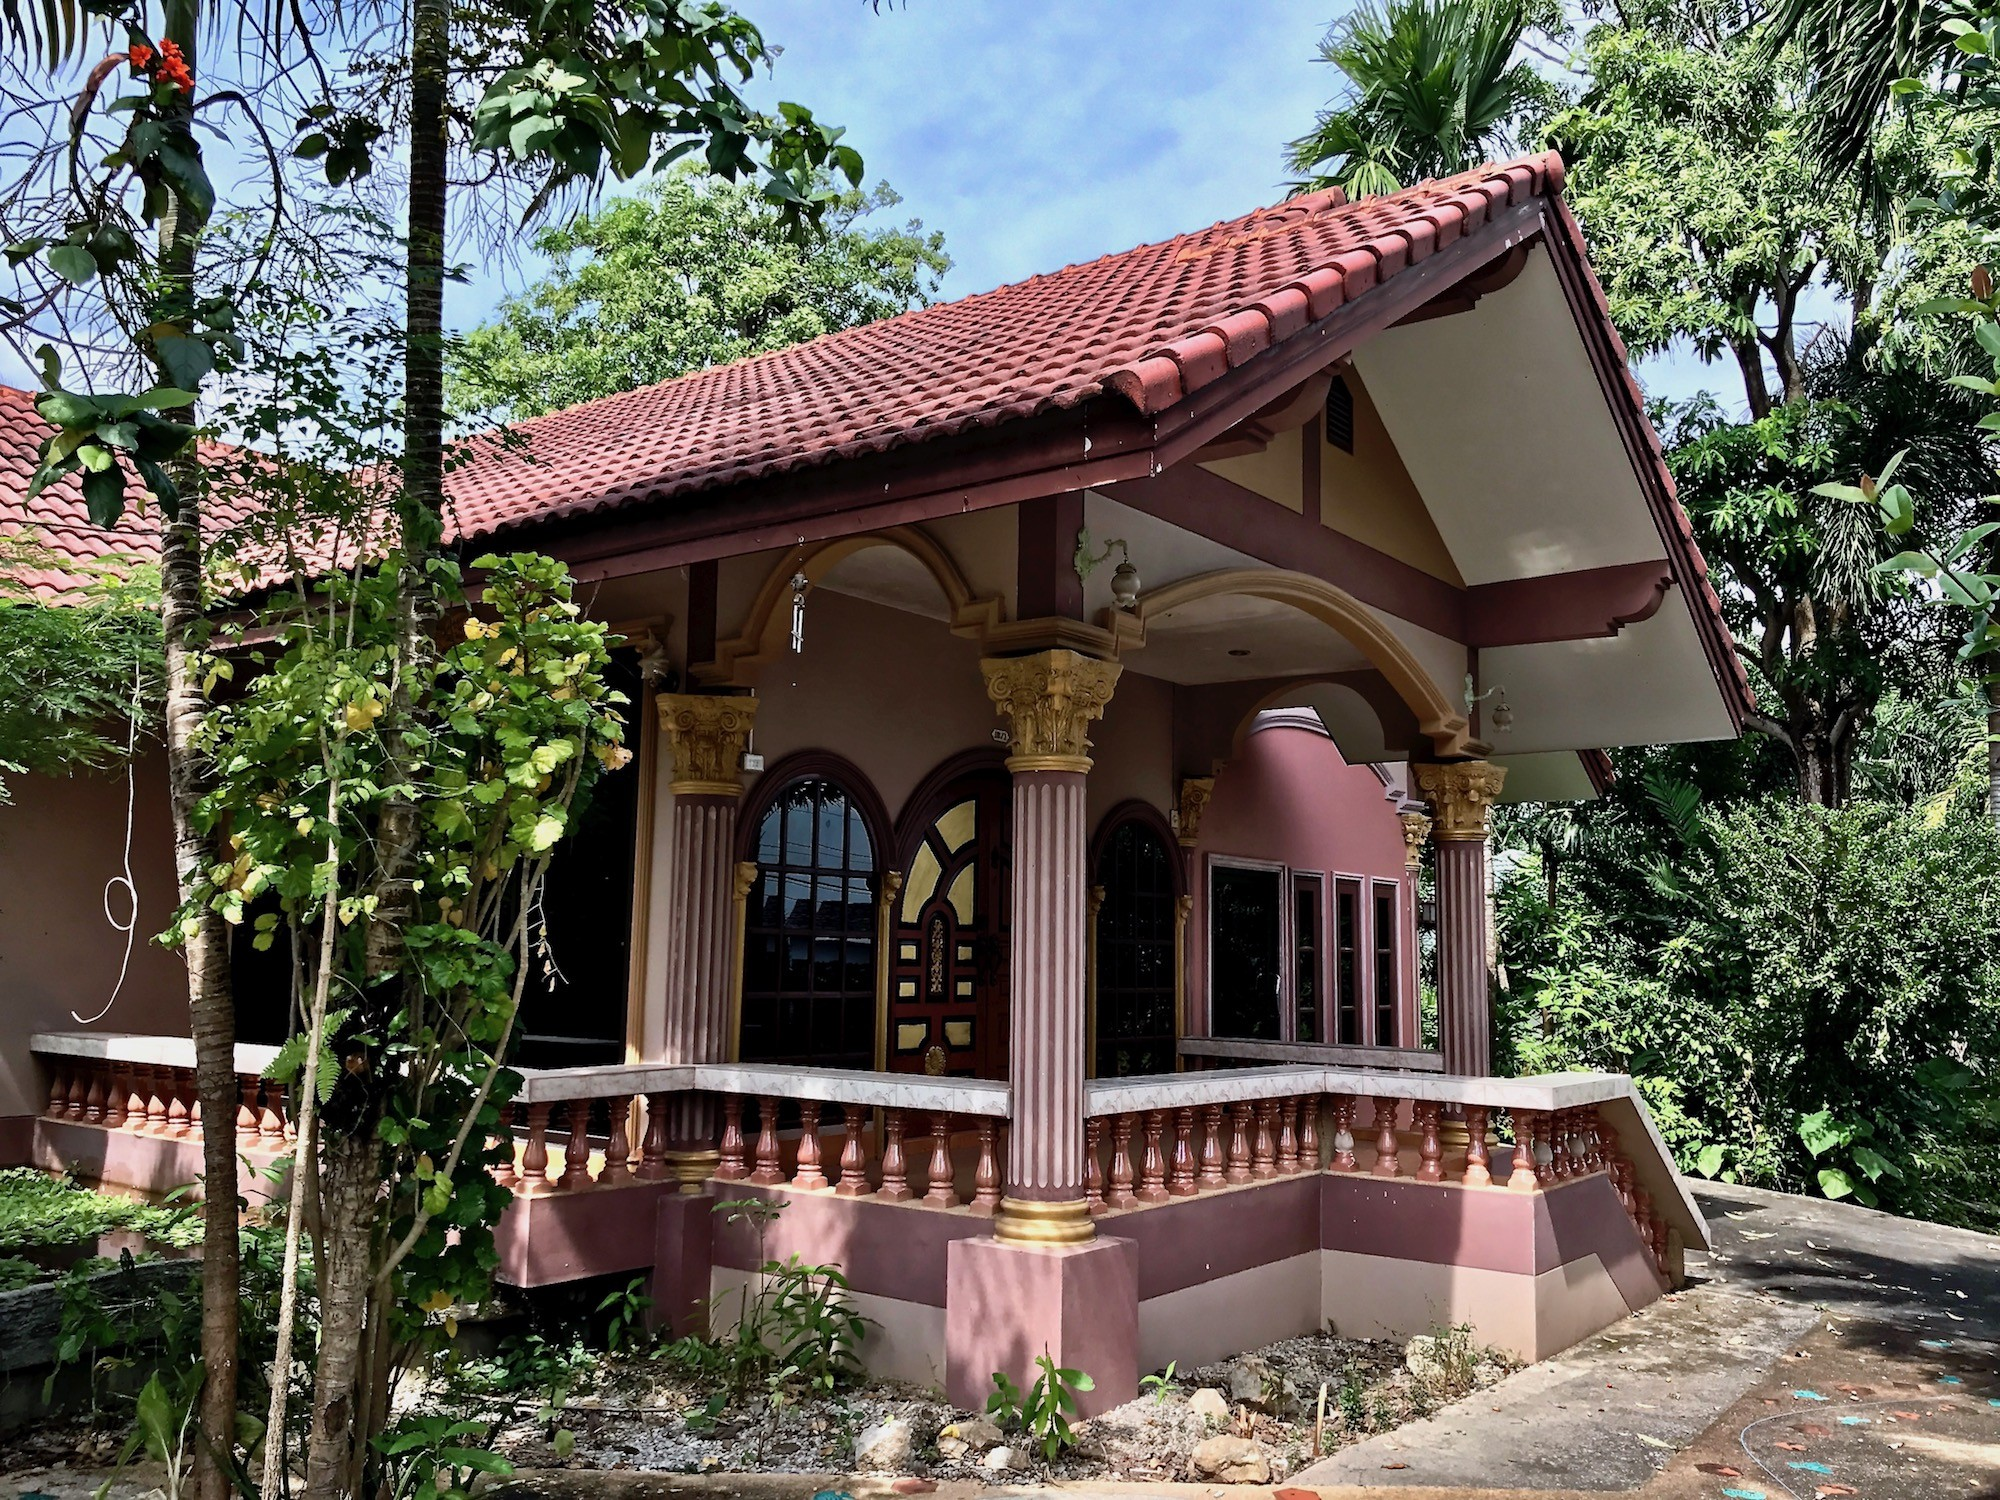 THAILANDE VILLA TRADITIONNELLE